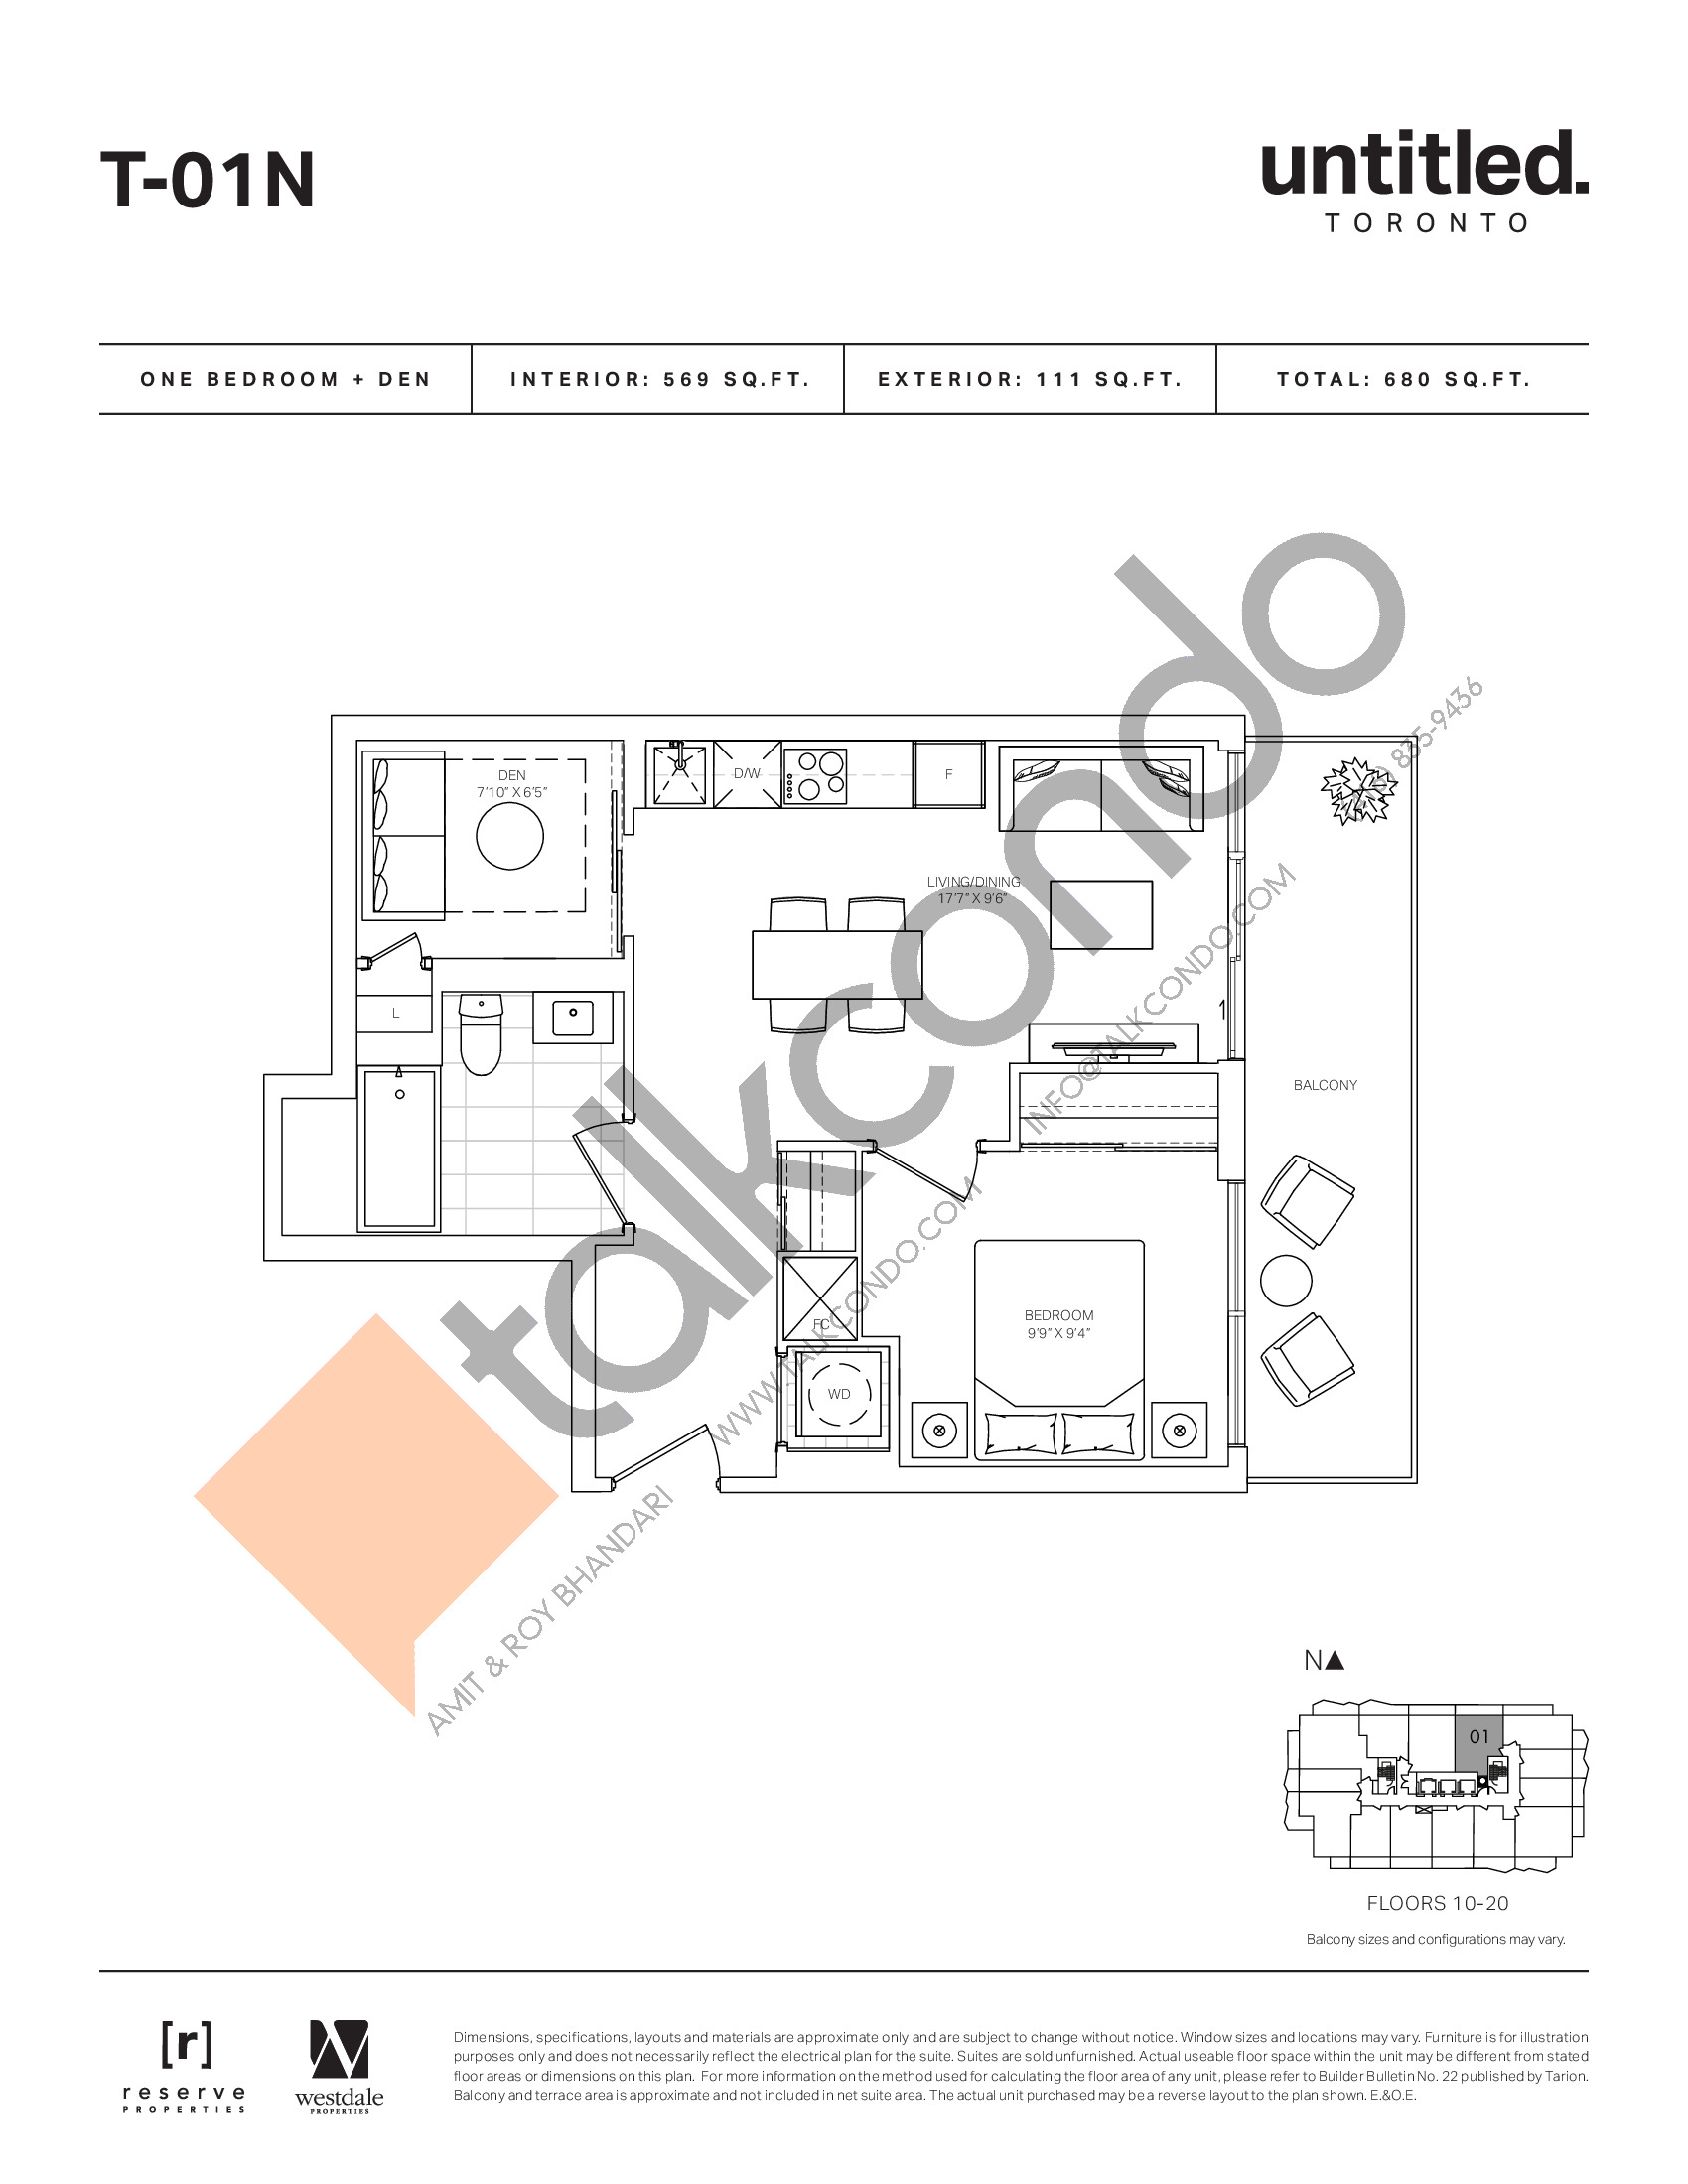 T-01N Floor Plan at Untitled North Tower Condos - 569 sq.ft